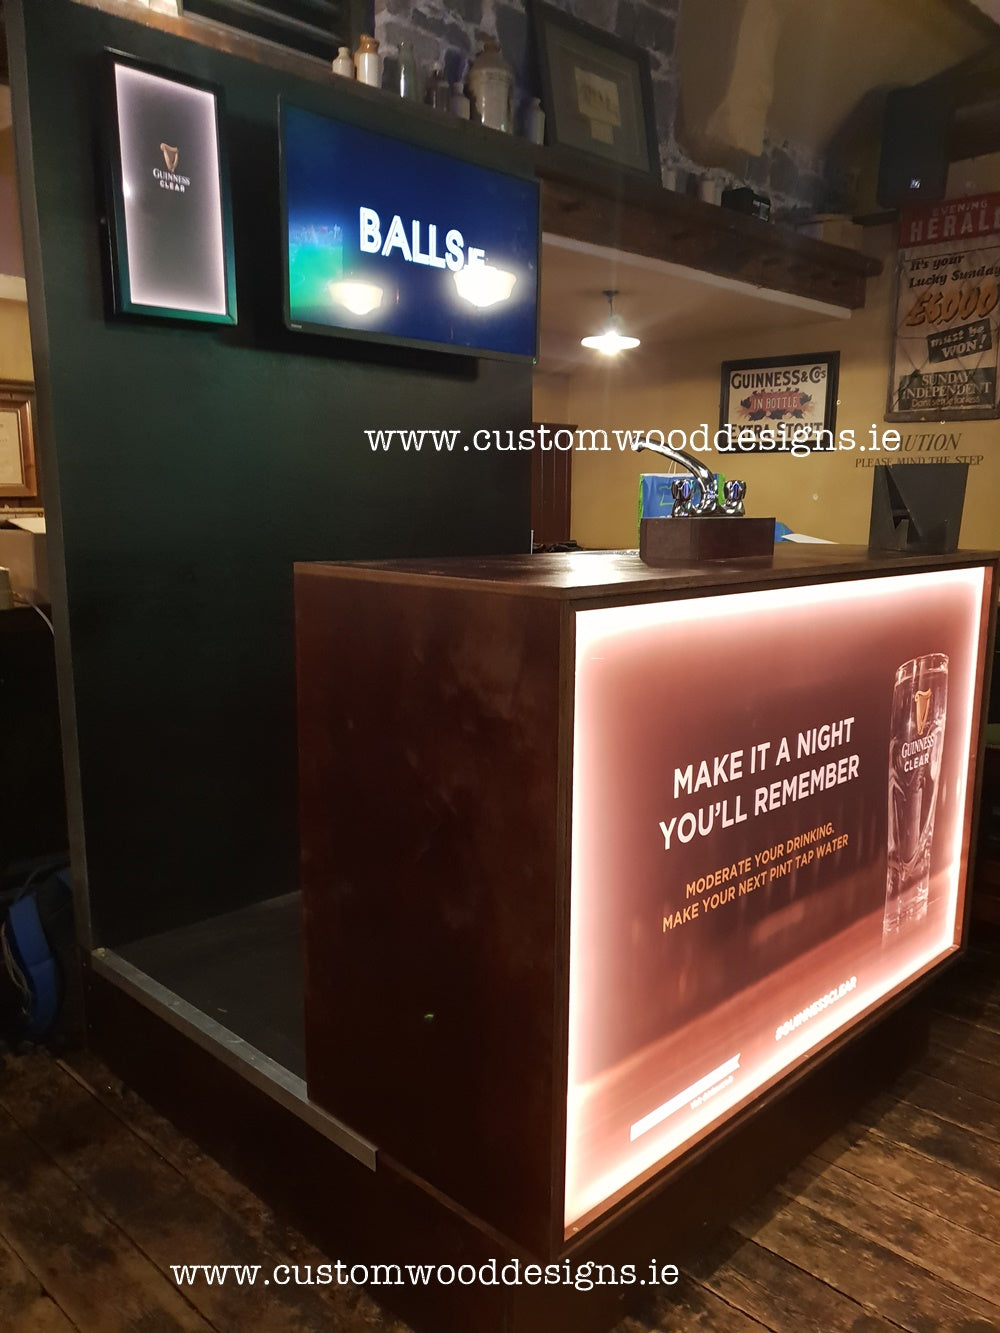 Guinness Stand Show stand logo branding light up box sale show promotional display custom wood designs guinness brand guiness clear hydration station gary byrne cnc wood timber design Ireland custom wood design (14) pub display branding promotional structure risen in the pub promotional